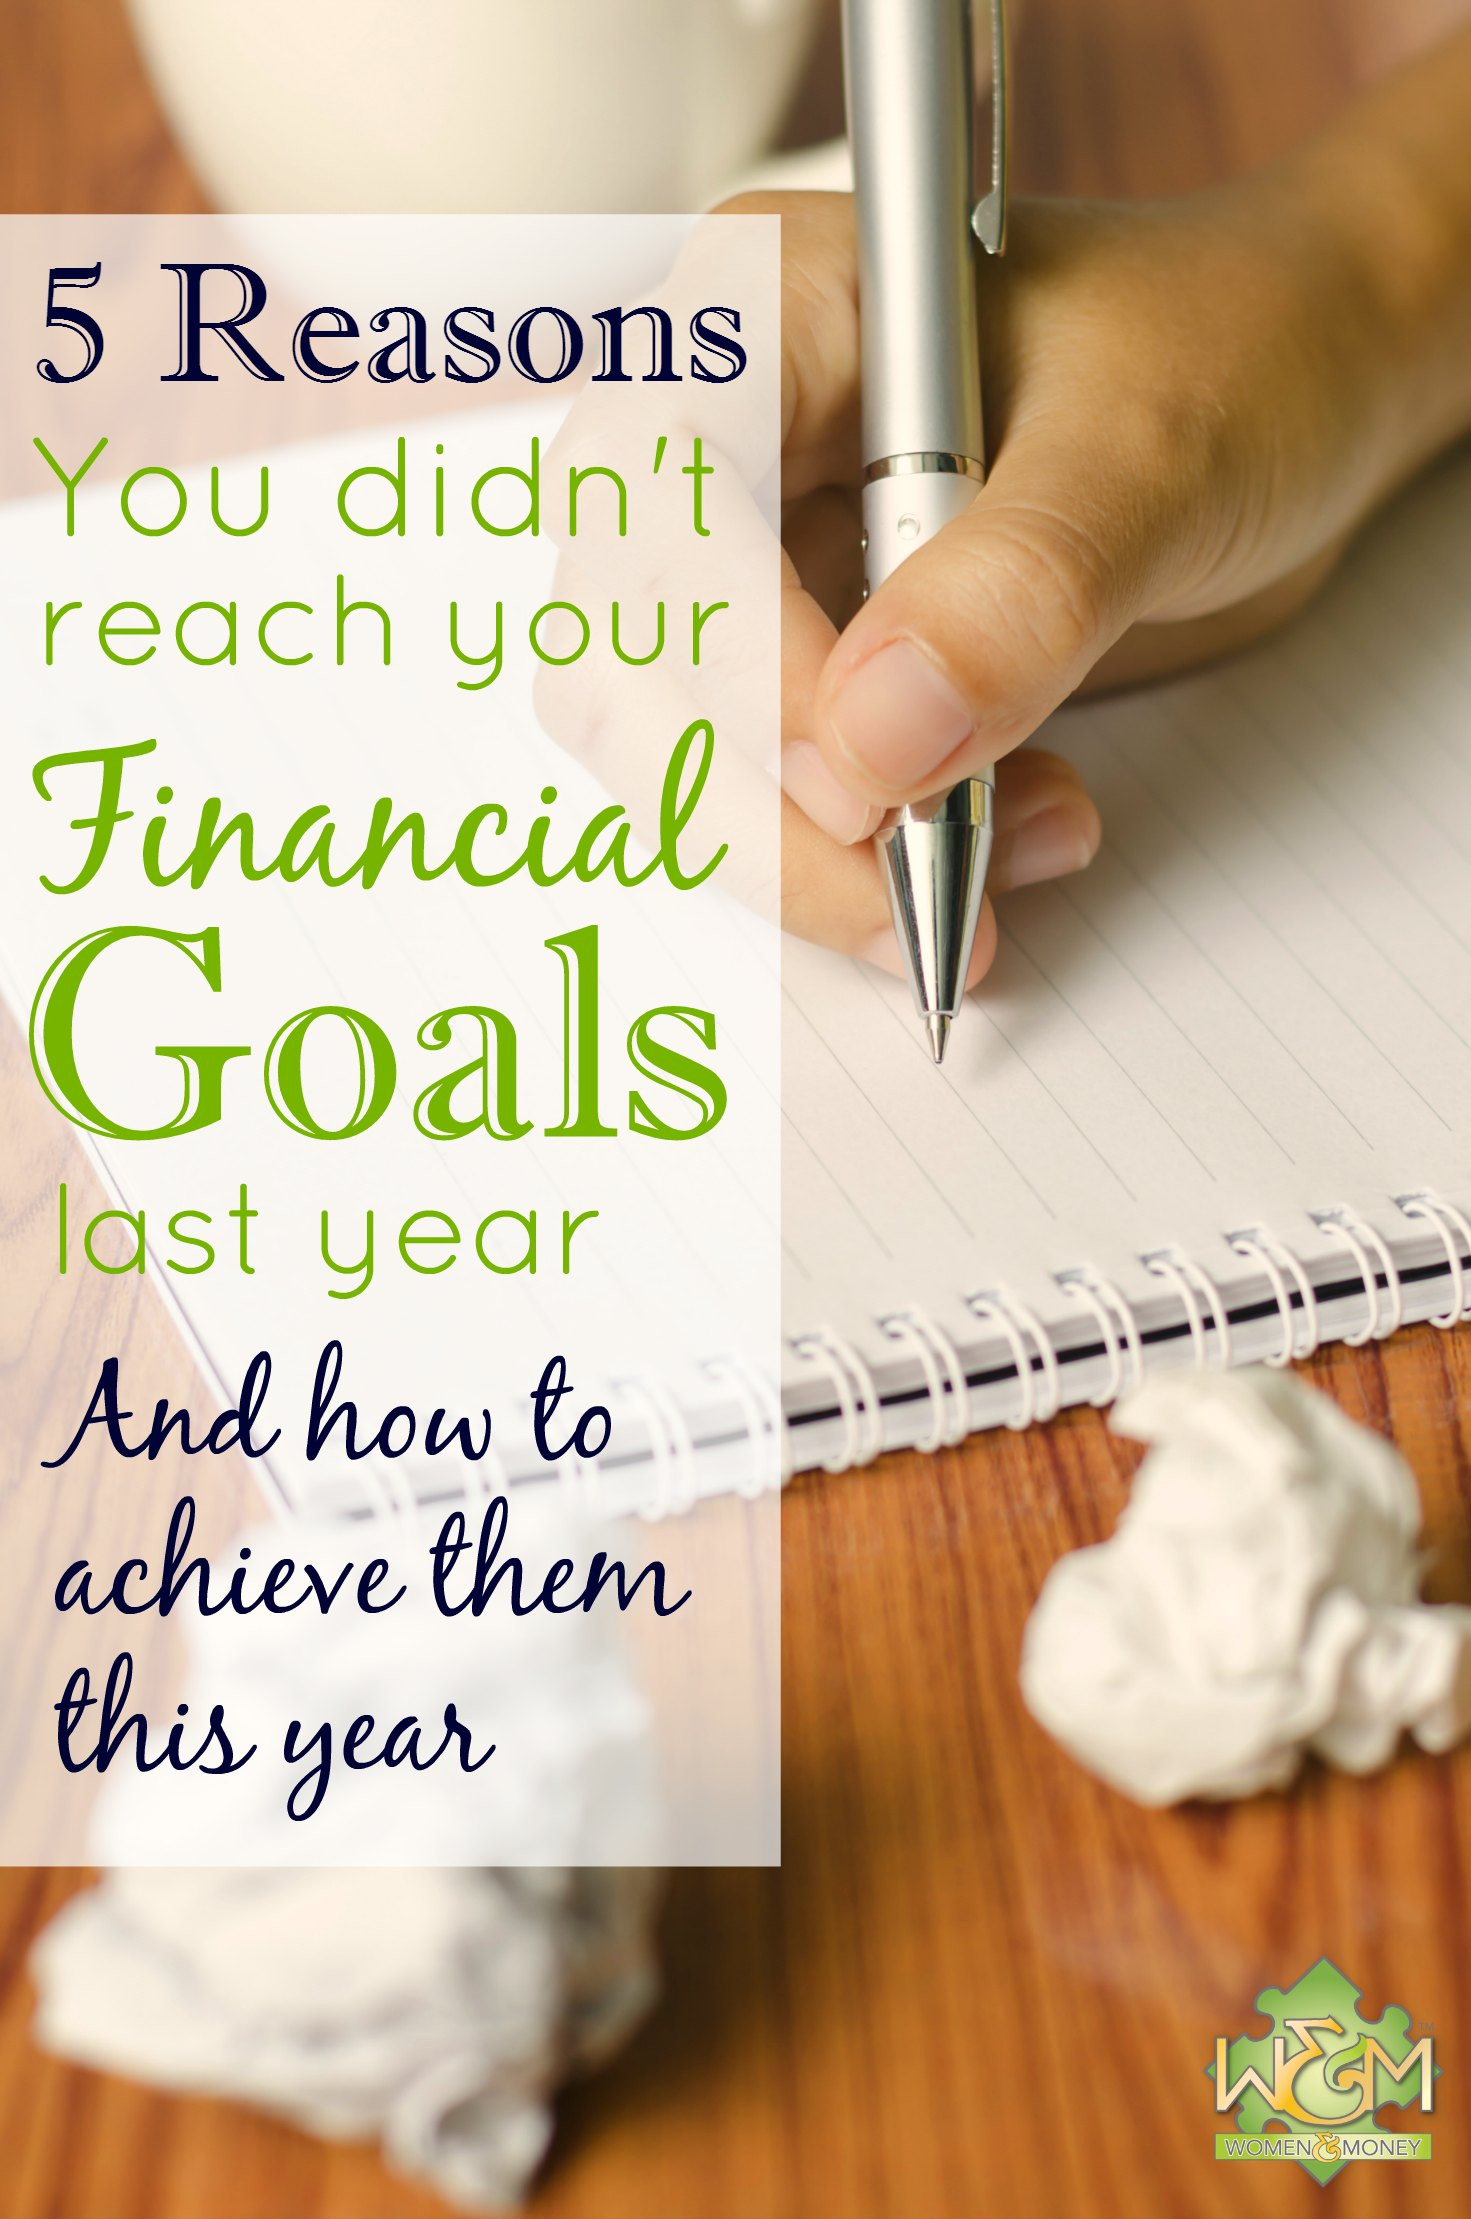 This is just what I needed! Can't wait to try these tips! - 5 reasons you didn't reach your financial goals last year and how to achieve them this year.